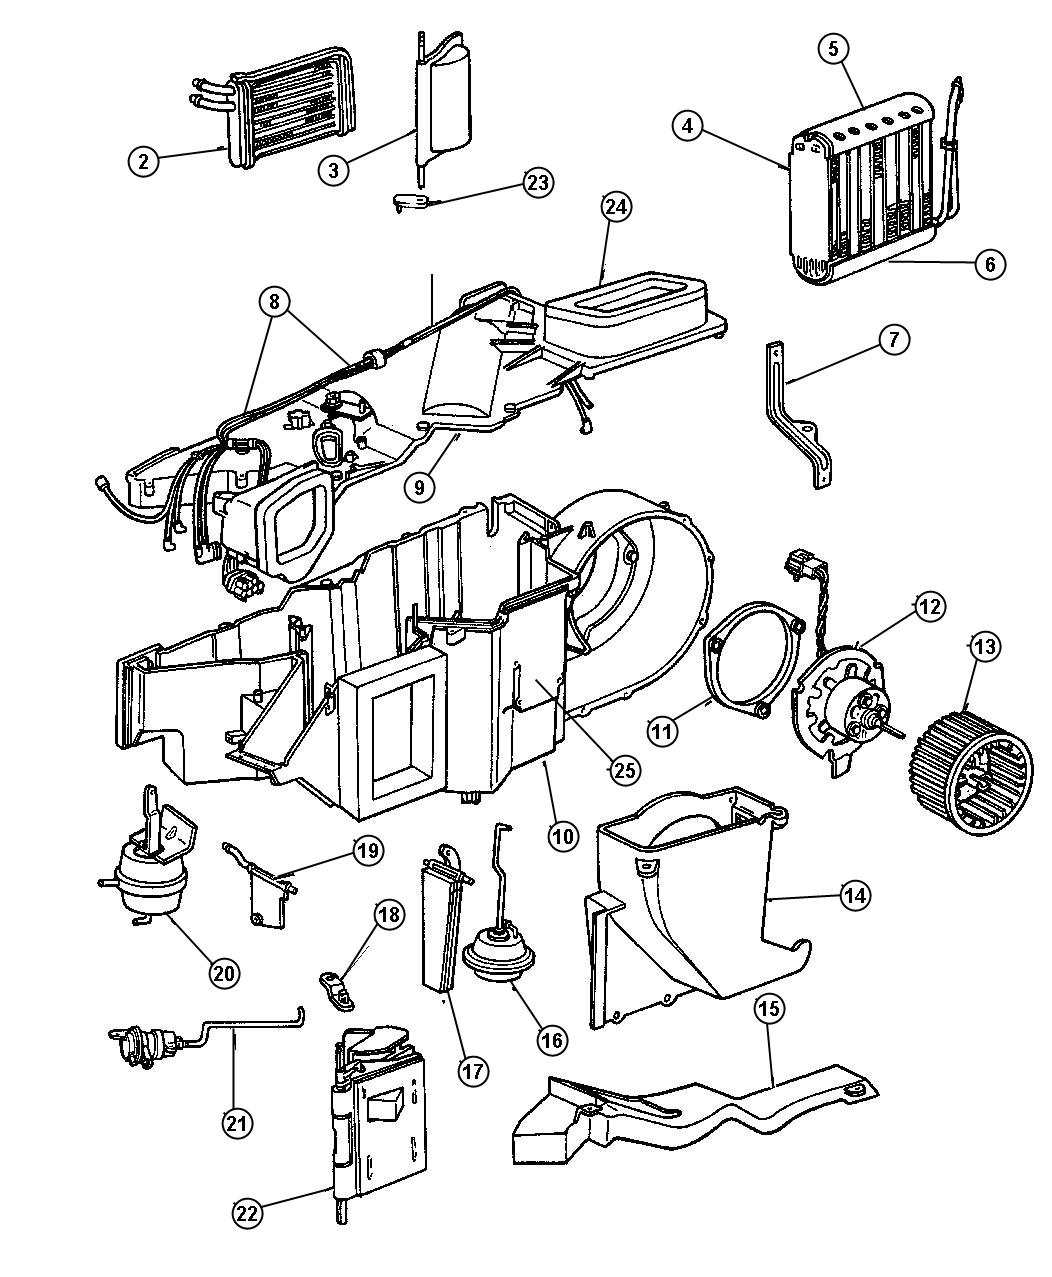 heater core 1999 plymouth voyager diagrams